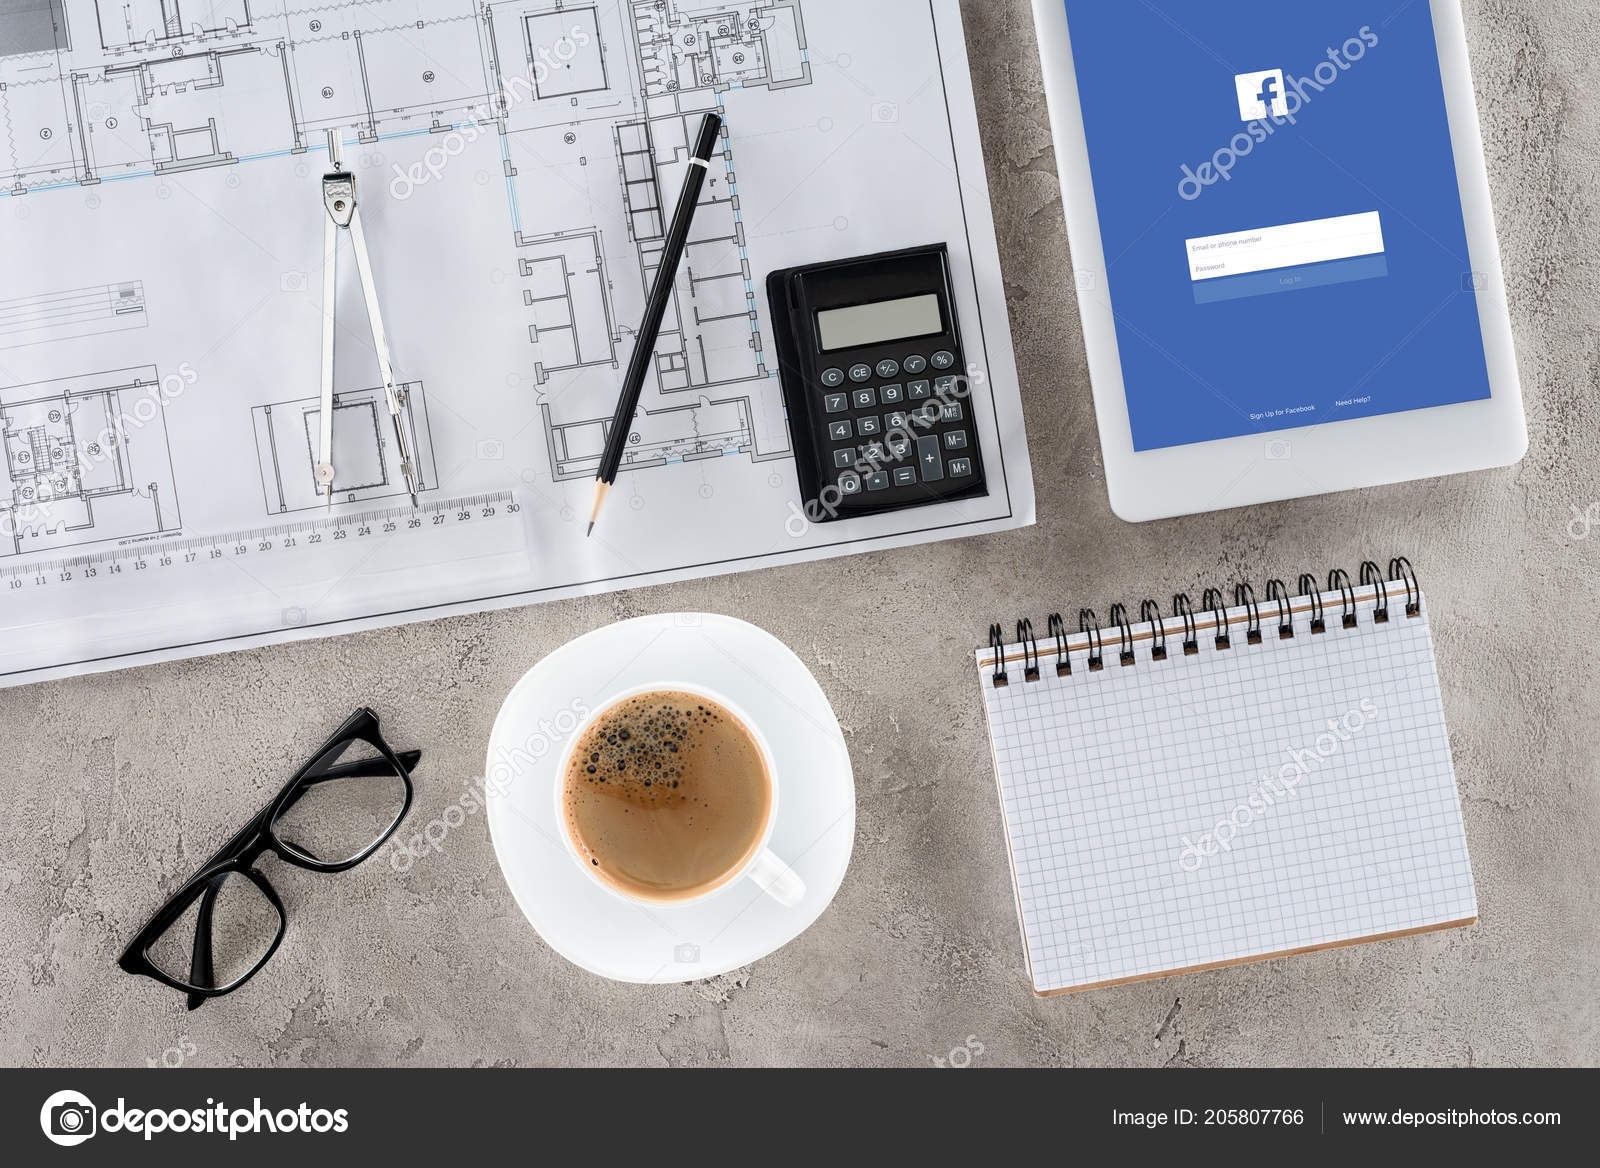 Top view architect workplace blueprint divider coffee digital tablet top view architect workplace blueprint divider coffee digital tablet facebook stock photo malvernweather Gallery